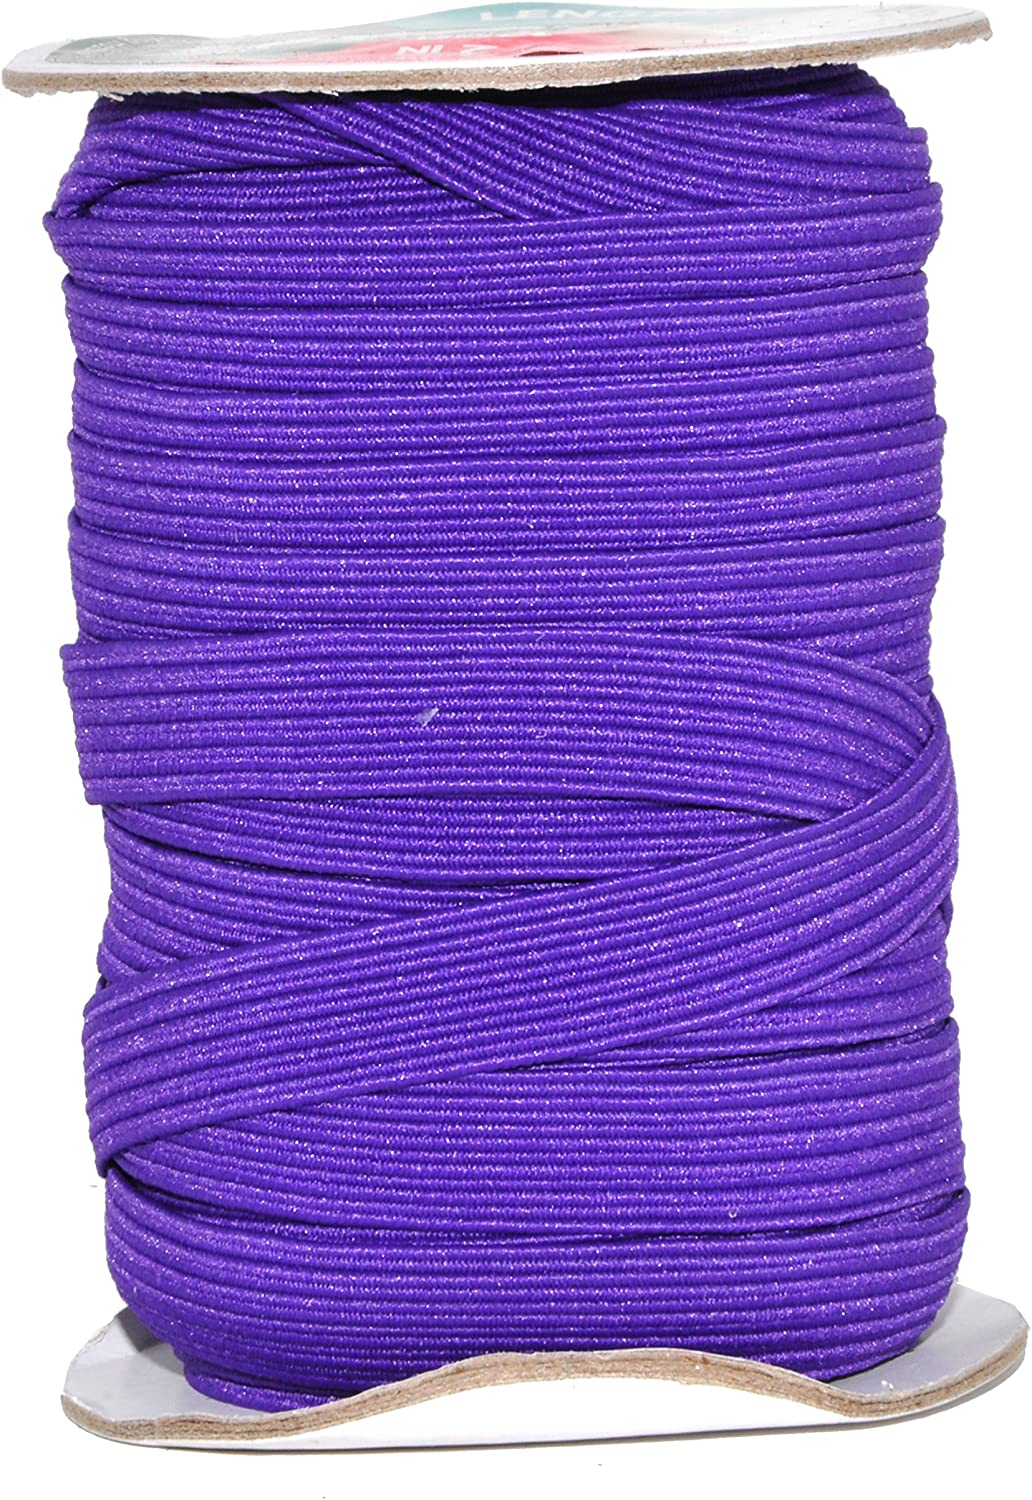 Mandala Crafts Colored Polyester Rubber Knit Flat Elastic Stretch Band Cord Spool Roll for Sewing Clothes Waistbands 1//4 inch 6mm 50 Yards, Turquoise